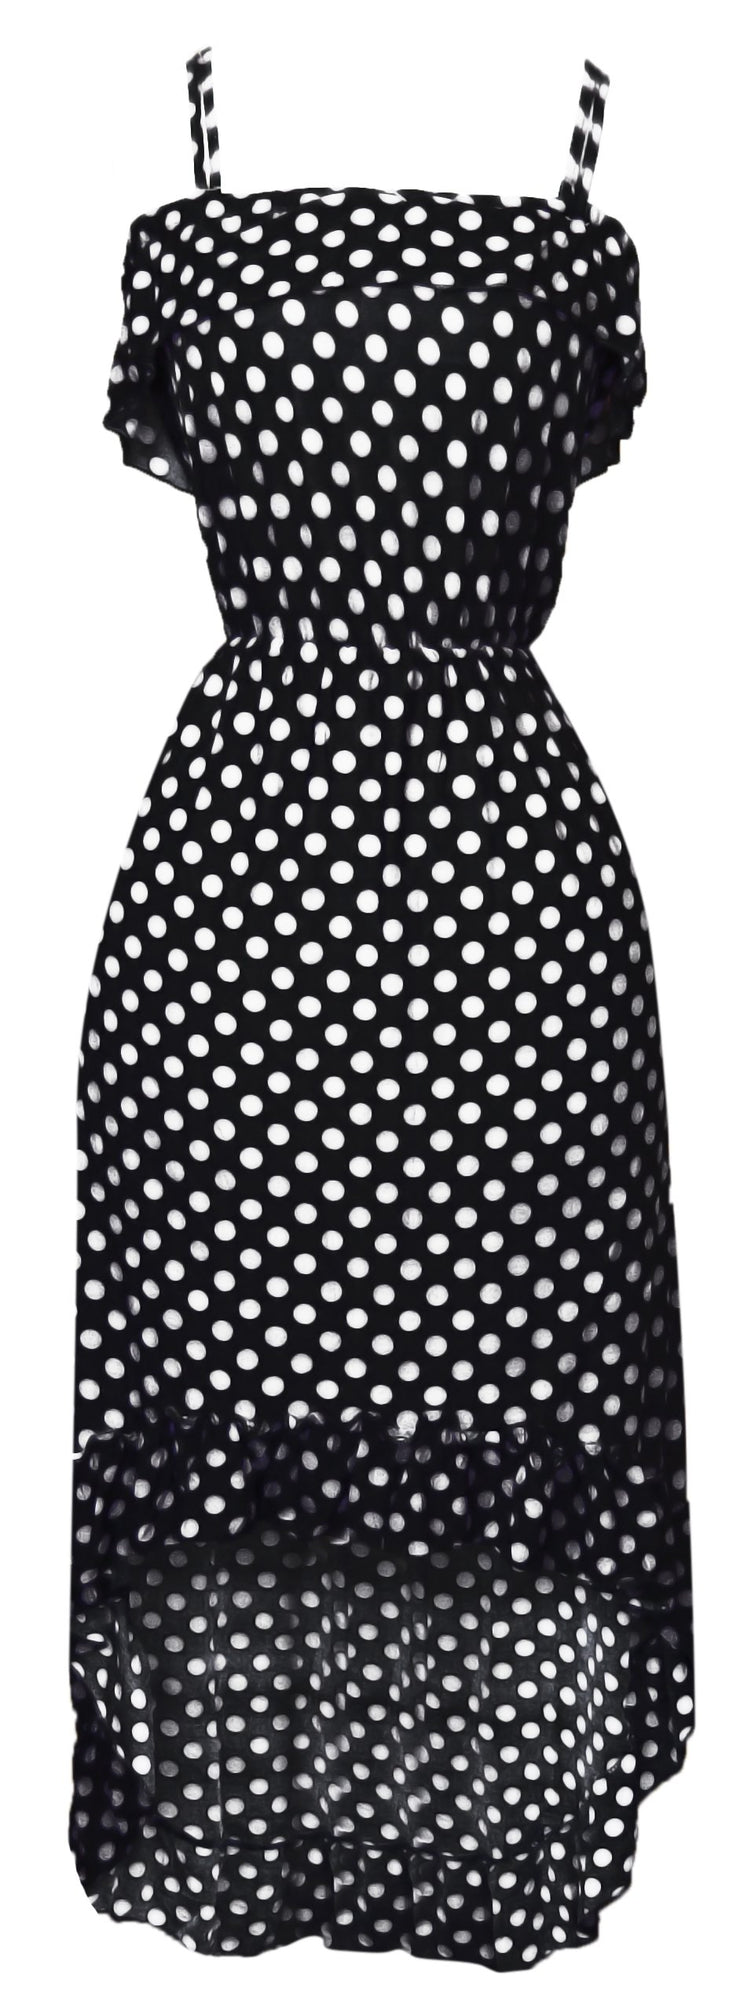 A1302-PolkDot-Maxi-Dress-blk-whi-XXL-SM